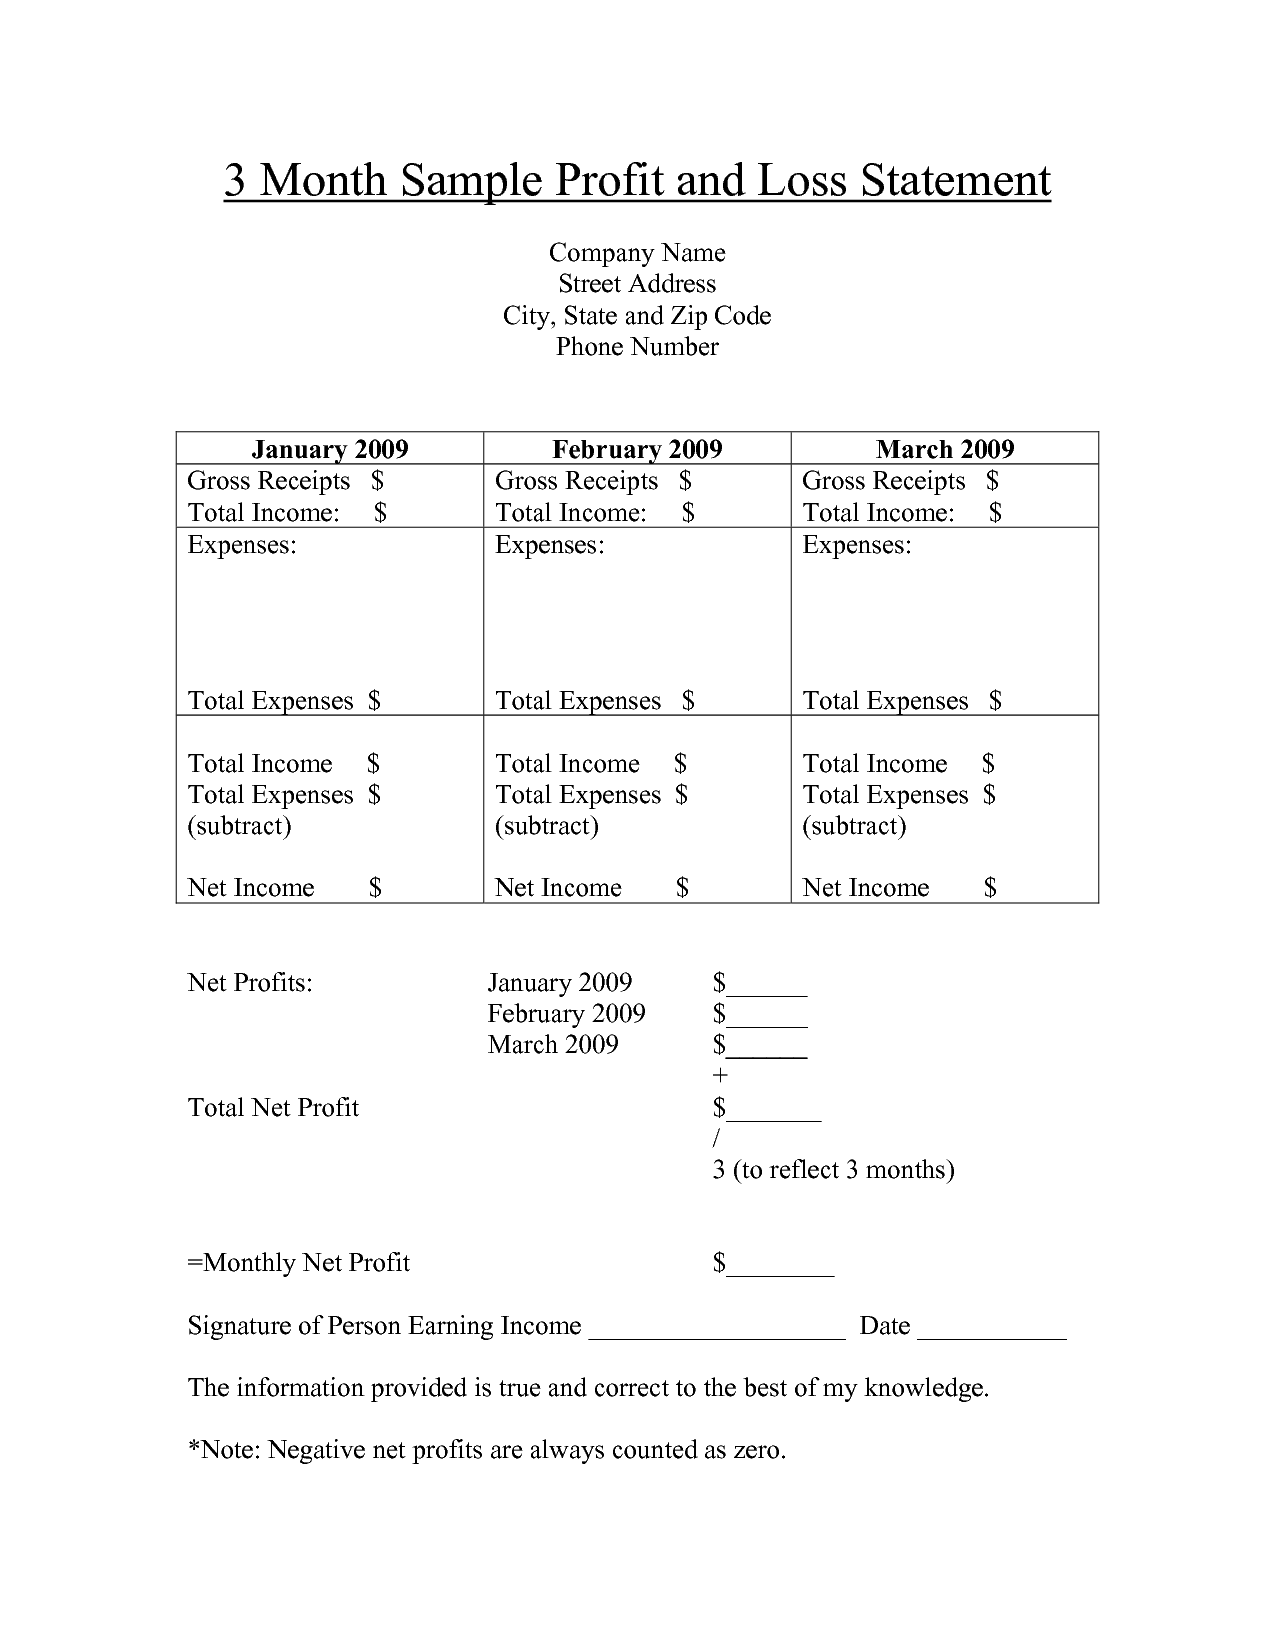 Free Printable Profit And Loss Statement Form For Home Care   Bing Images  Printable Profit And Loss Statement